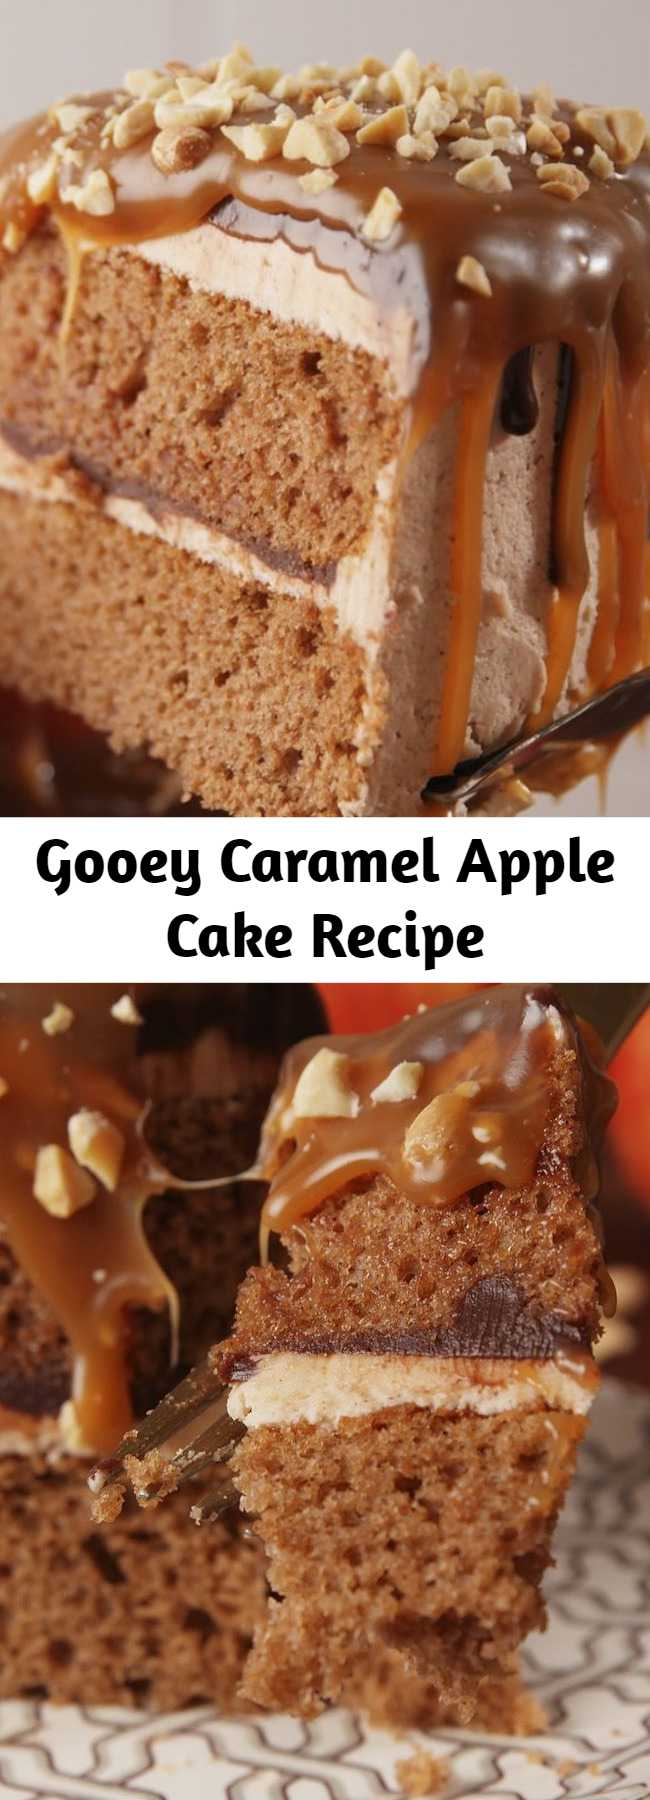 Gooey Caramel Apple Cake Recipe - This is a next level fall cake. A spiced cake is topped with a layer of caramel and then caramel apples, this cake is gorgeous. Perfect for every fall festivity you have coming your way.